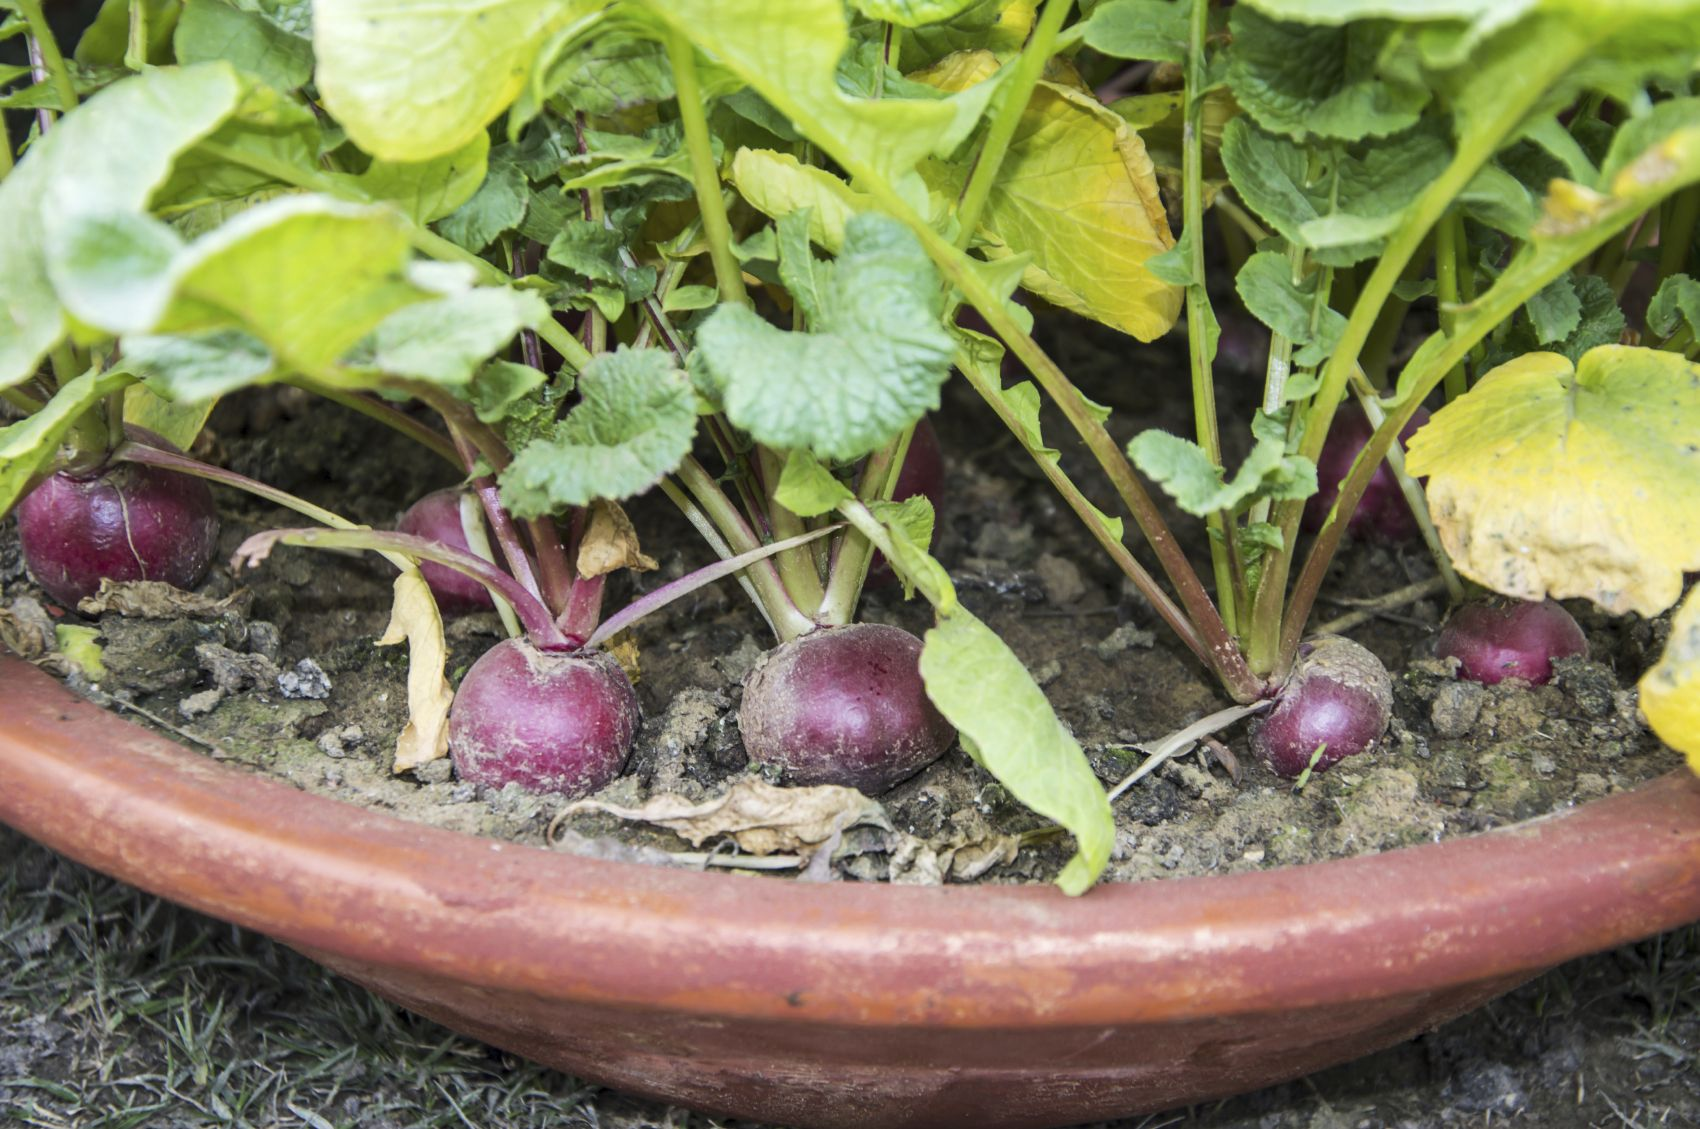 Yellow radish leaves are a sign that there is a radish growing problem. Why do radish leaves turn yellow and how can you treat a radish plant that has yellow leaves? This article has information that should help with that.